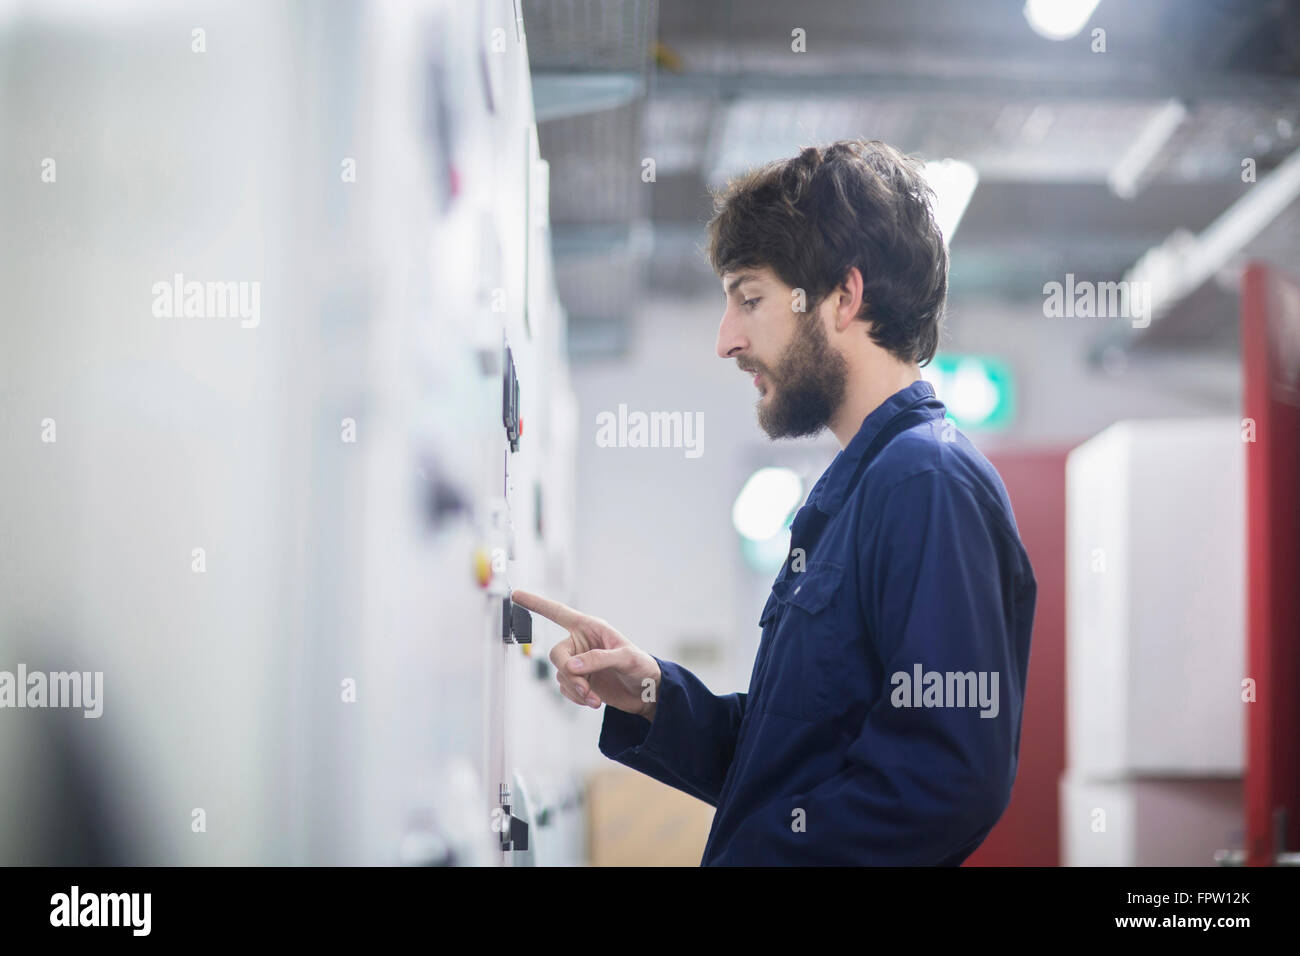 Young male engineer controlling a switch gear in control room, Freiburg Im Breisgau, Baden-Württemberg, Germany - Stock Image